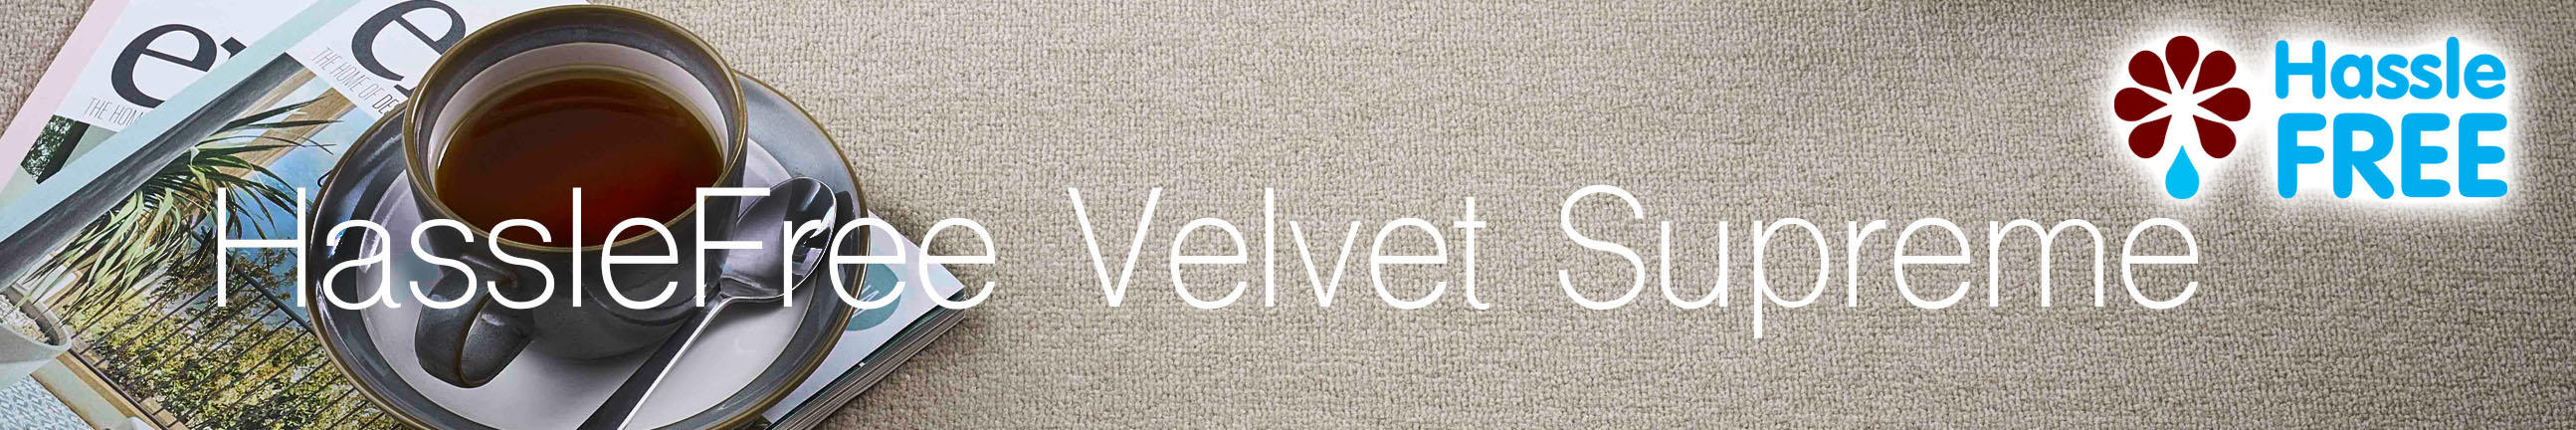 HassleFree Velvet Supreme Carpet Header